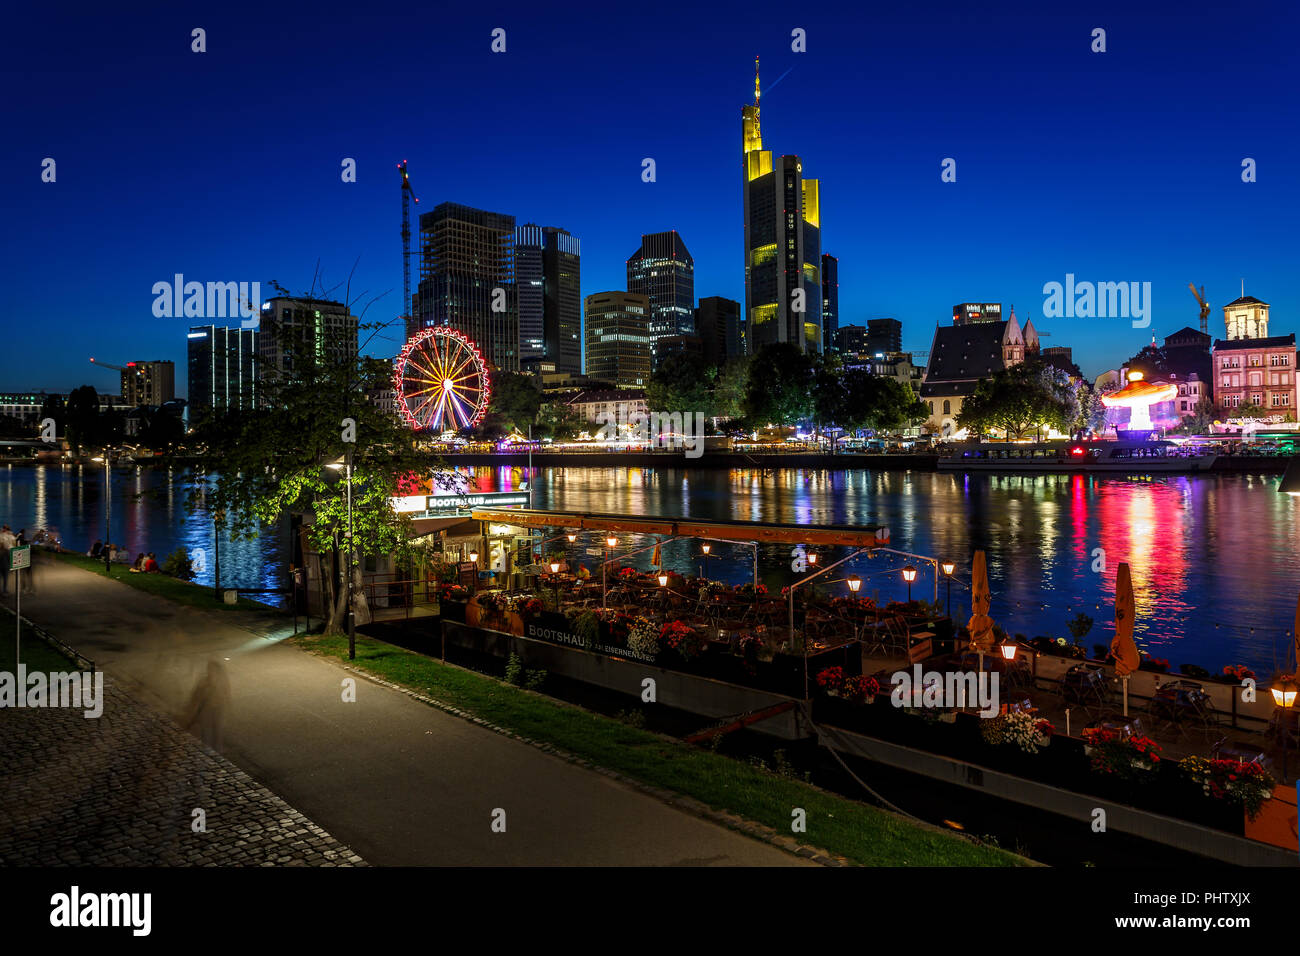 FRANKFURT AM MAIN, GERMANY - August  07, 2017: Frankfurt am Main - the business capital of Germany at night. View of illuminated skyscrapers - Stock Image